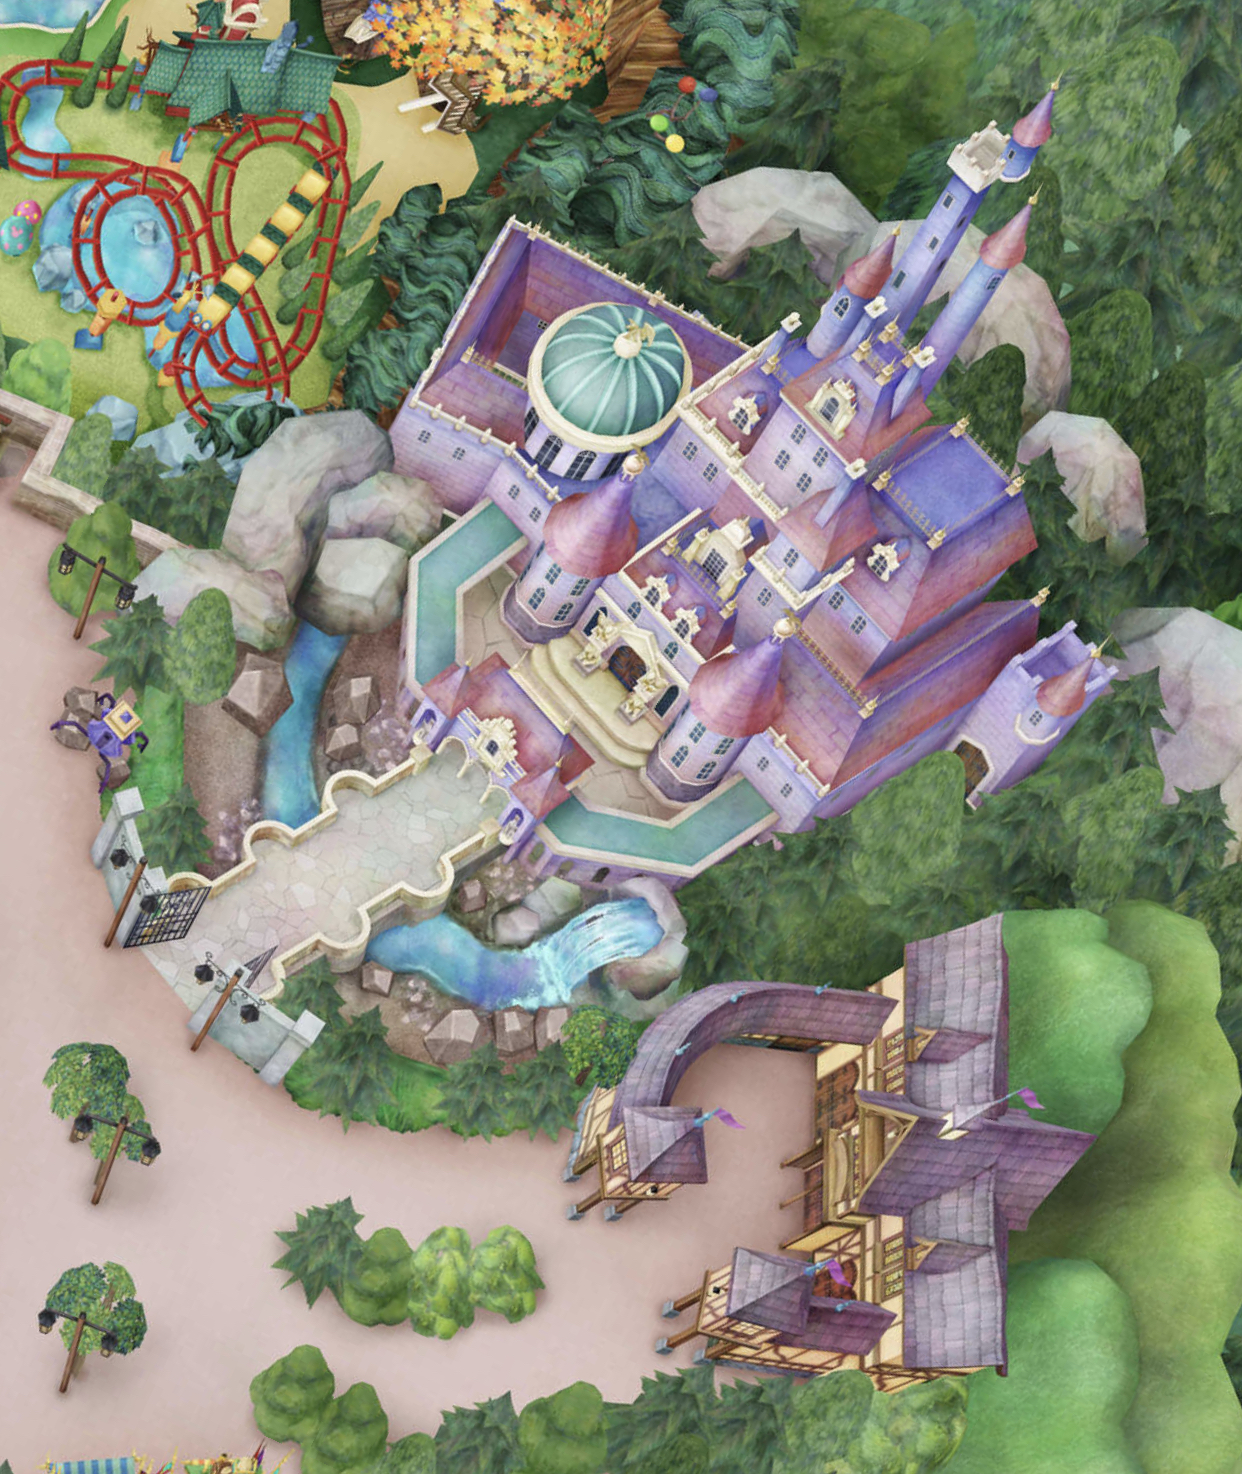 Tokyo Disneyland S Expansion Areas Including The Enchanted Tale Of Beauty And The Beast Soft Open And Have Been Added To The Park Map